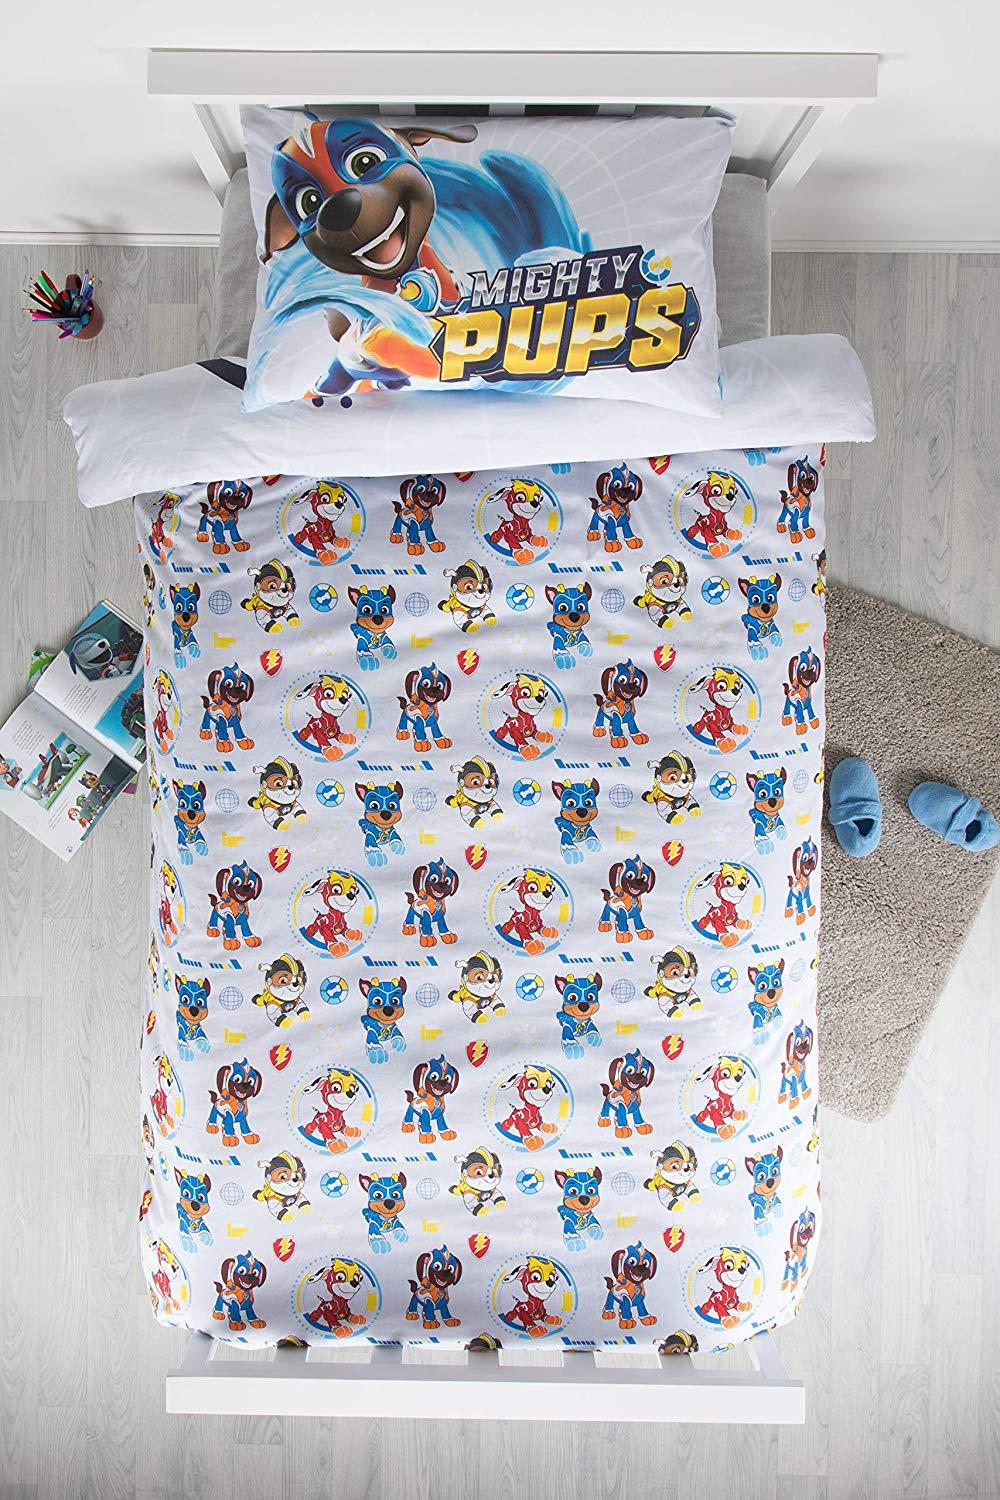 Official-Paw-Patrol-Licensed-Duvet-Covers-Single-Double-Chase-Skye-Marshall thumbnail 41